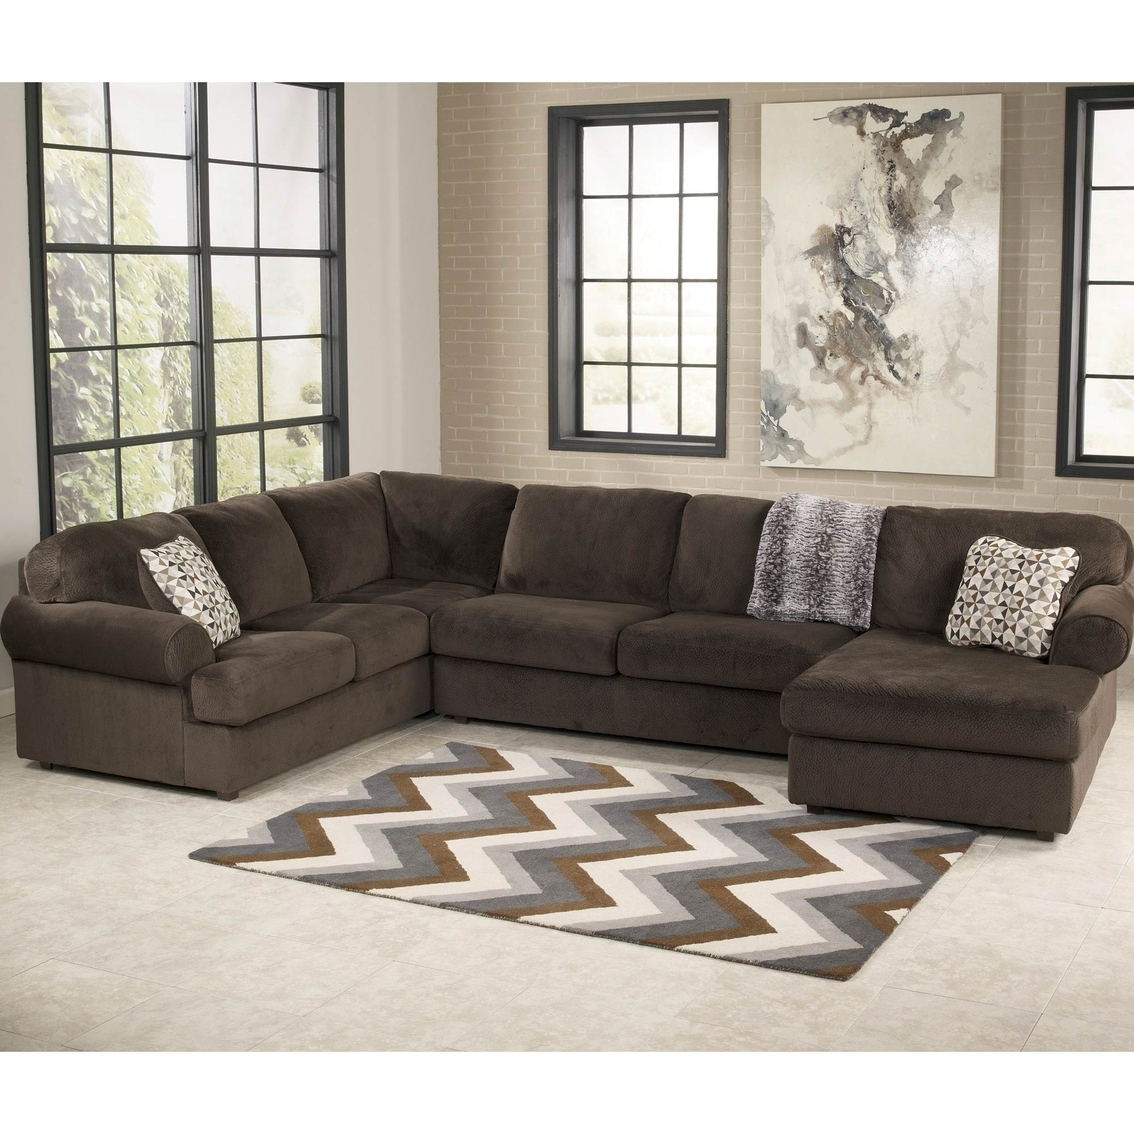 Best And Newest 10x8 Sectional Sofas Throughout Brown Sectional Living Room (View 9 of 20)